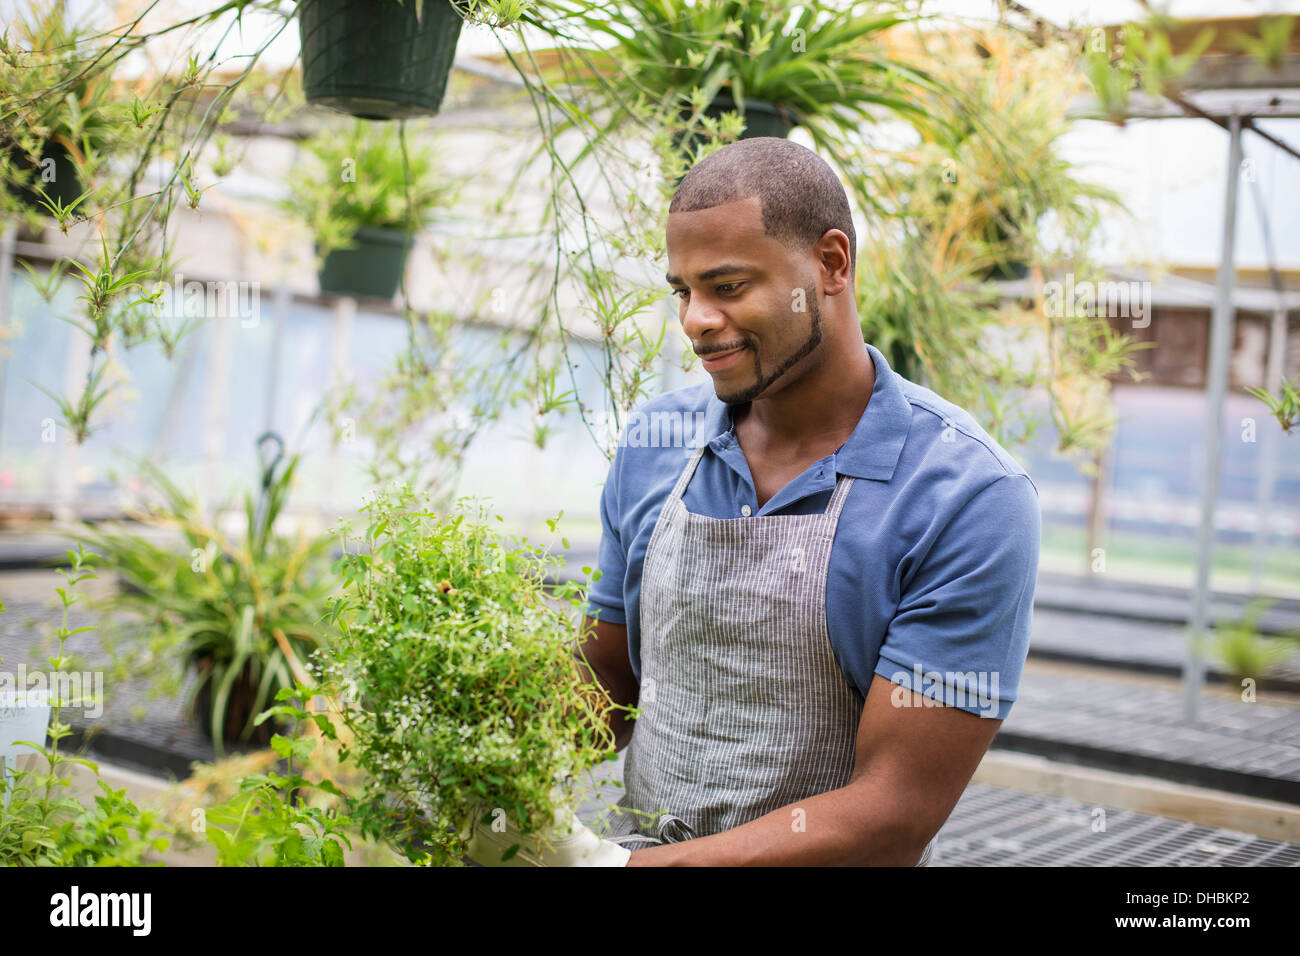 Working on an organic farm. A man tending young plants in a glass house. - Stock Image